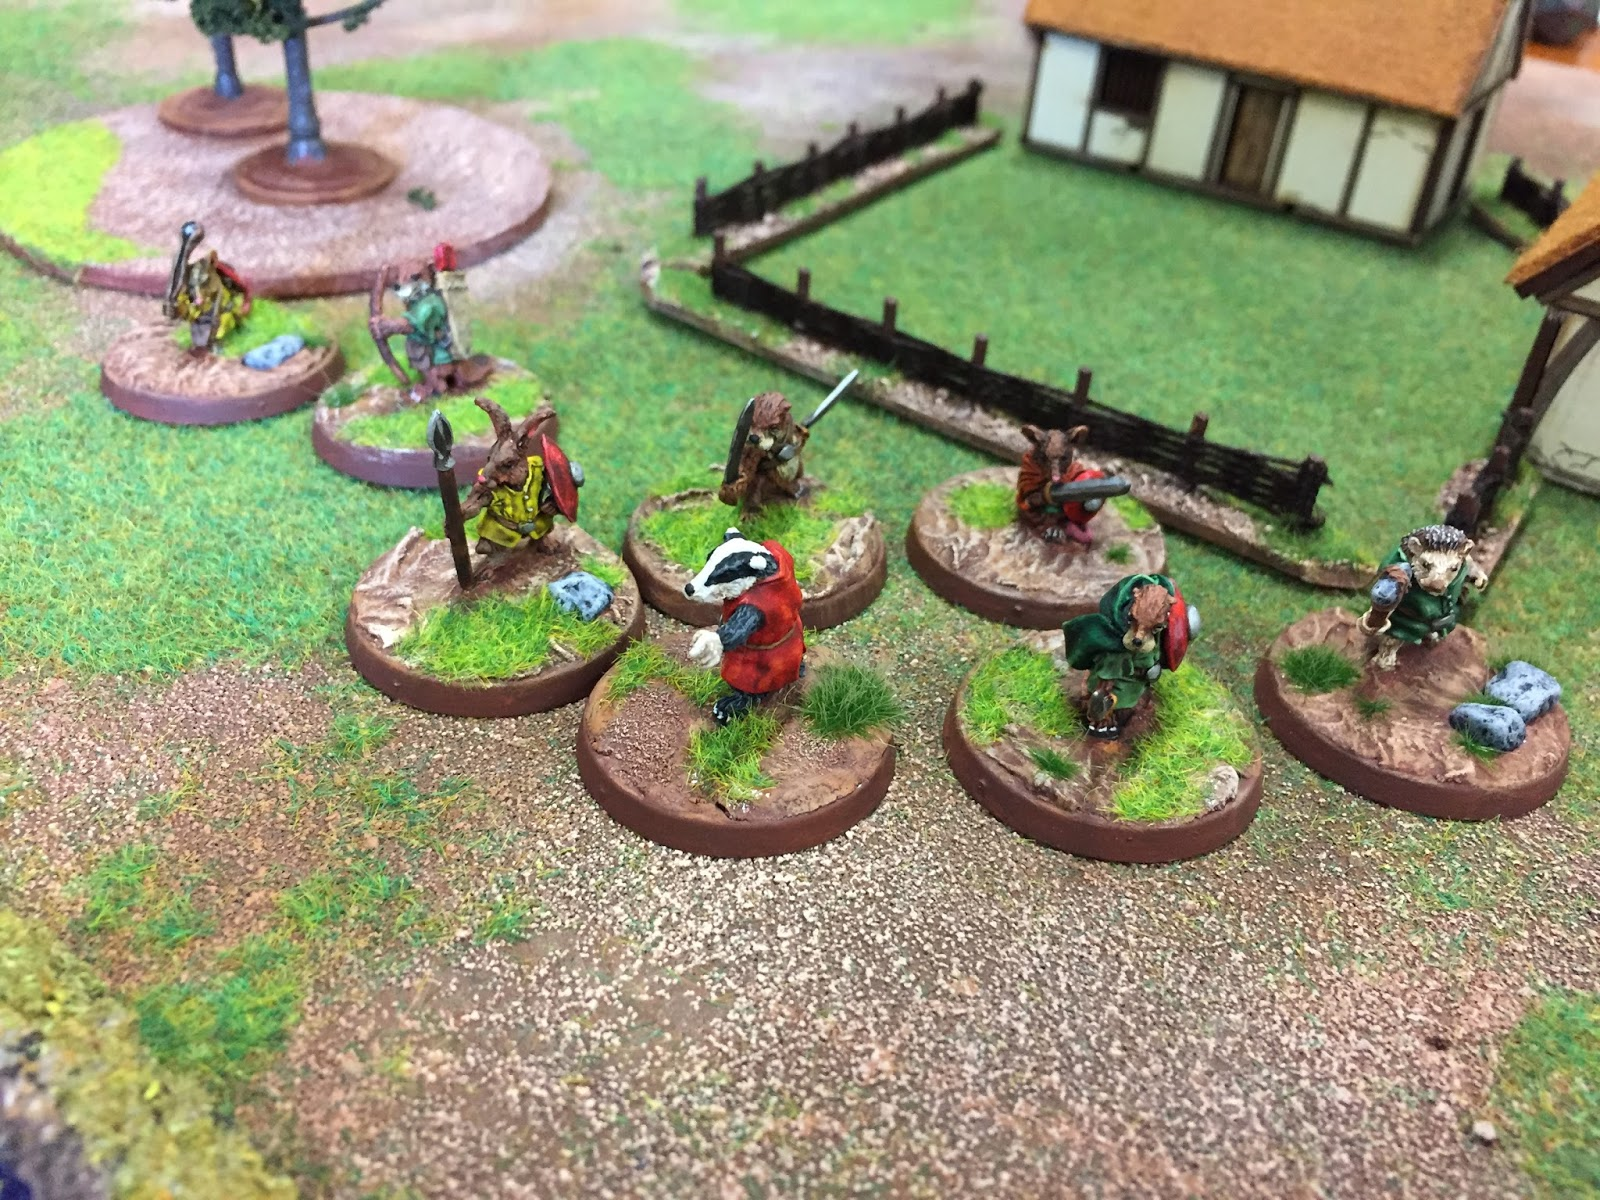 Song of Blades and Heroes with Splintered Light minis